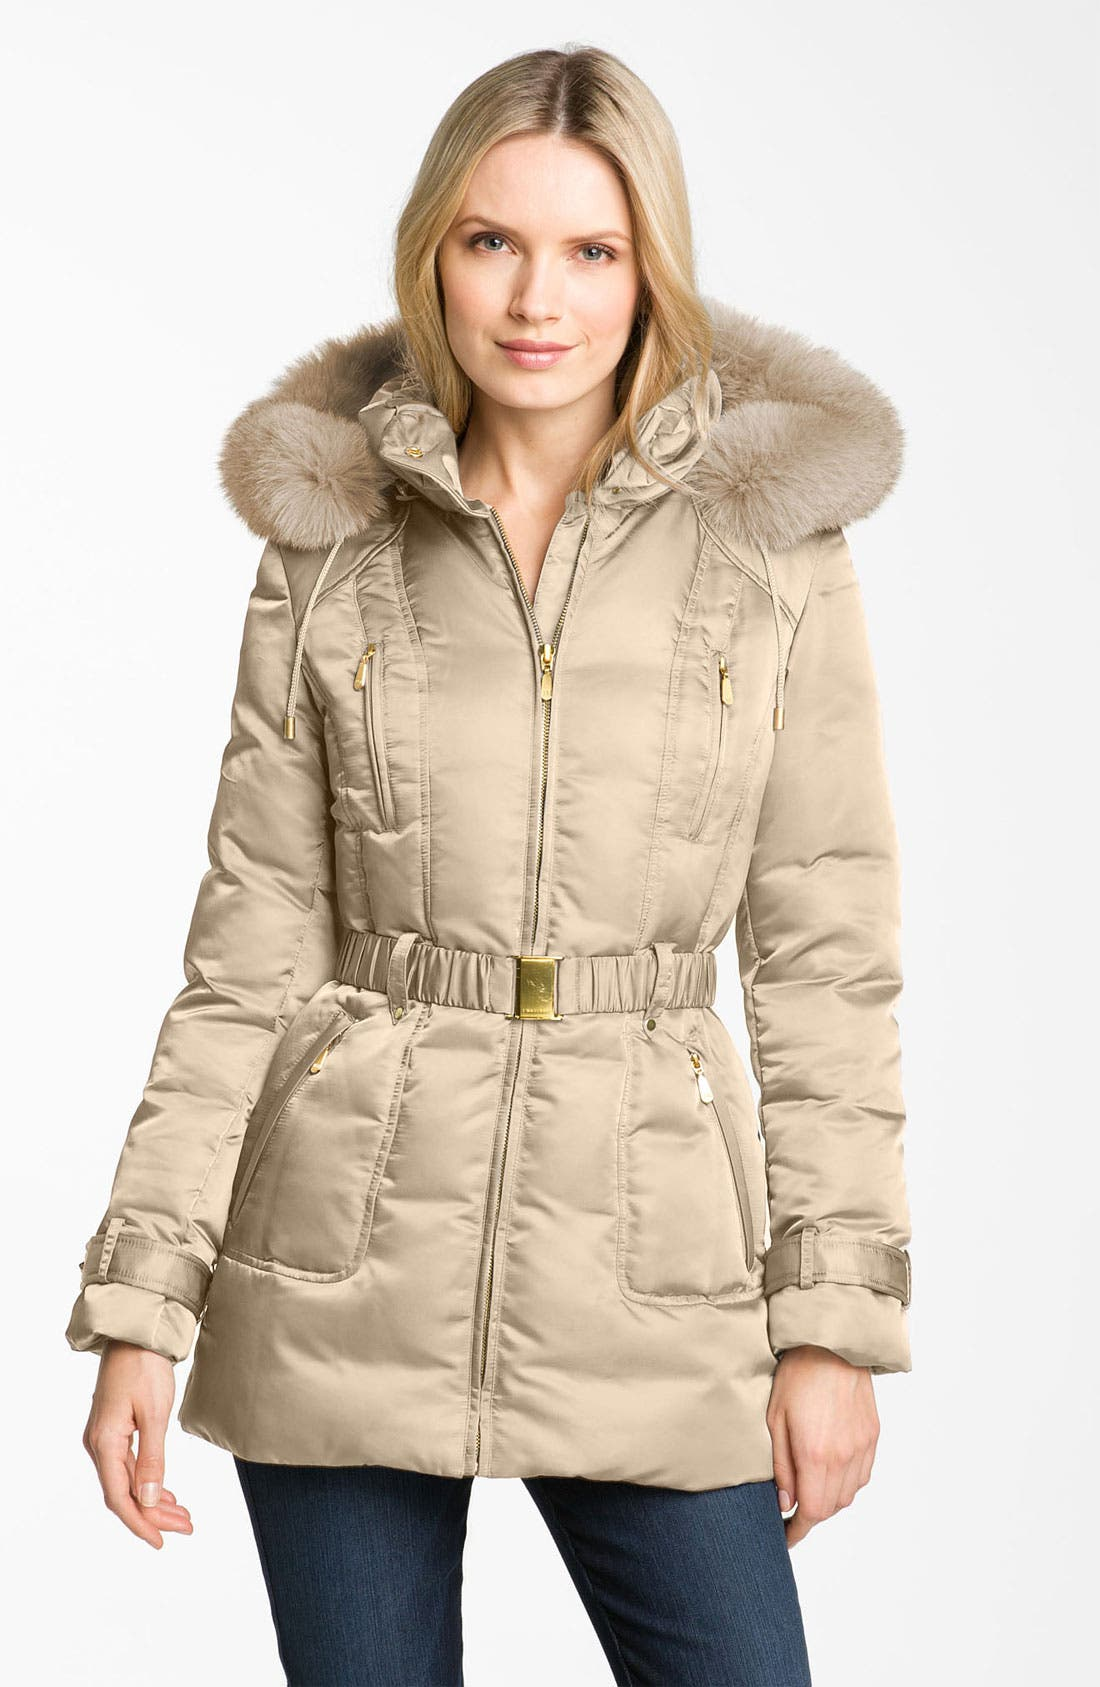 Alternate Image 1 Selected - 1 Madison Genuine Fox Fur Trim Down Jacket (Online Exclusive)